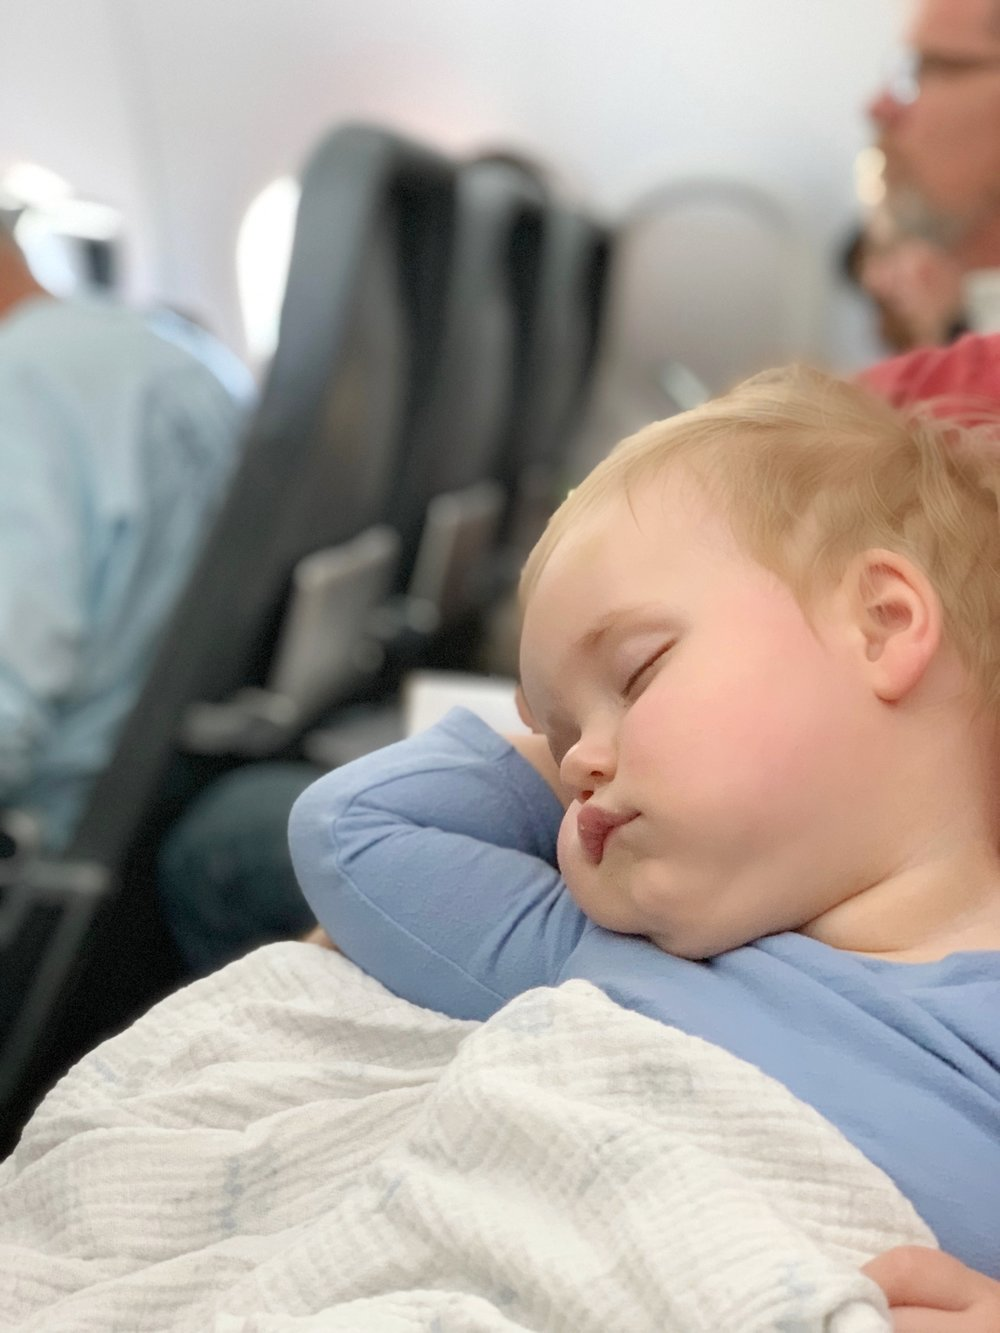 baby sleeping on an airplane